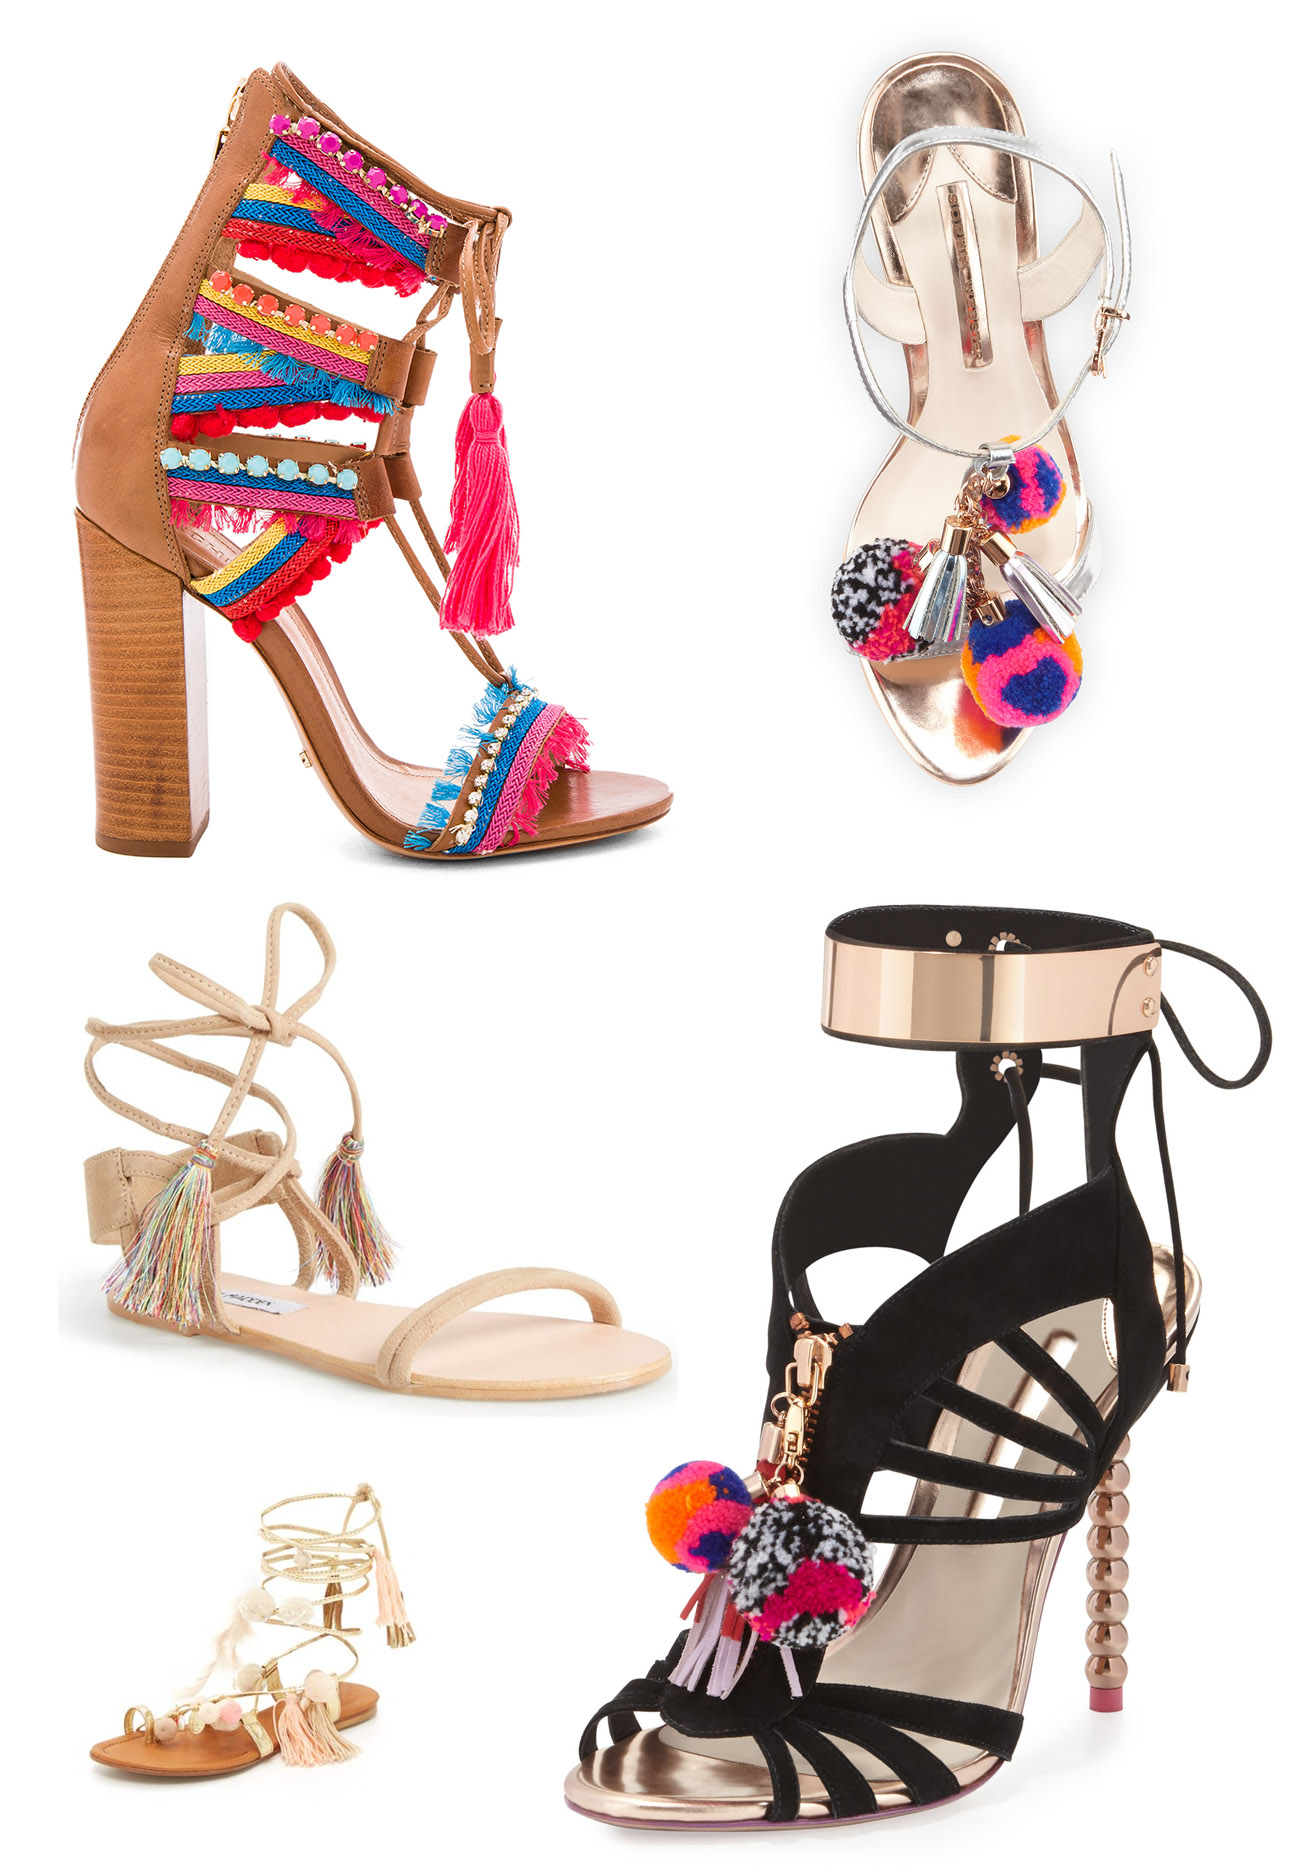 shoes with tassels and poms